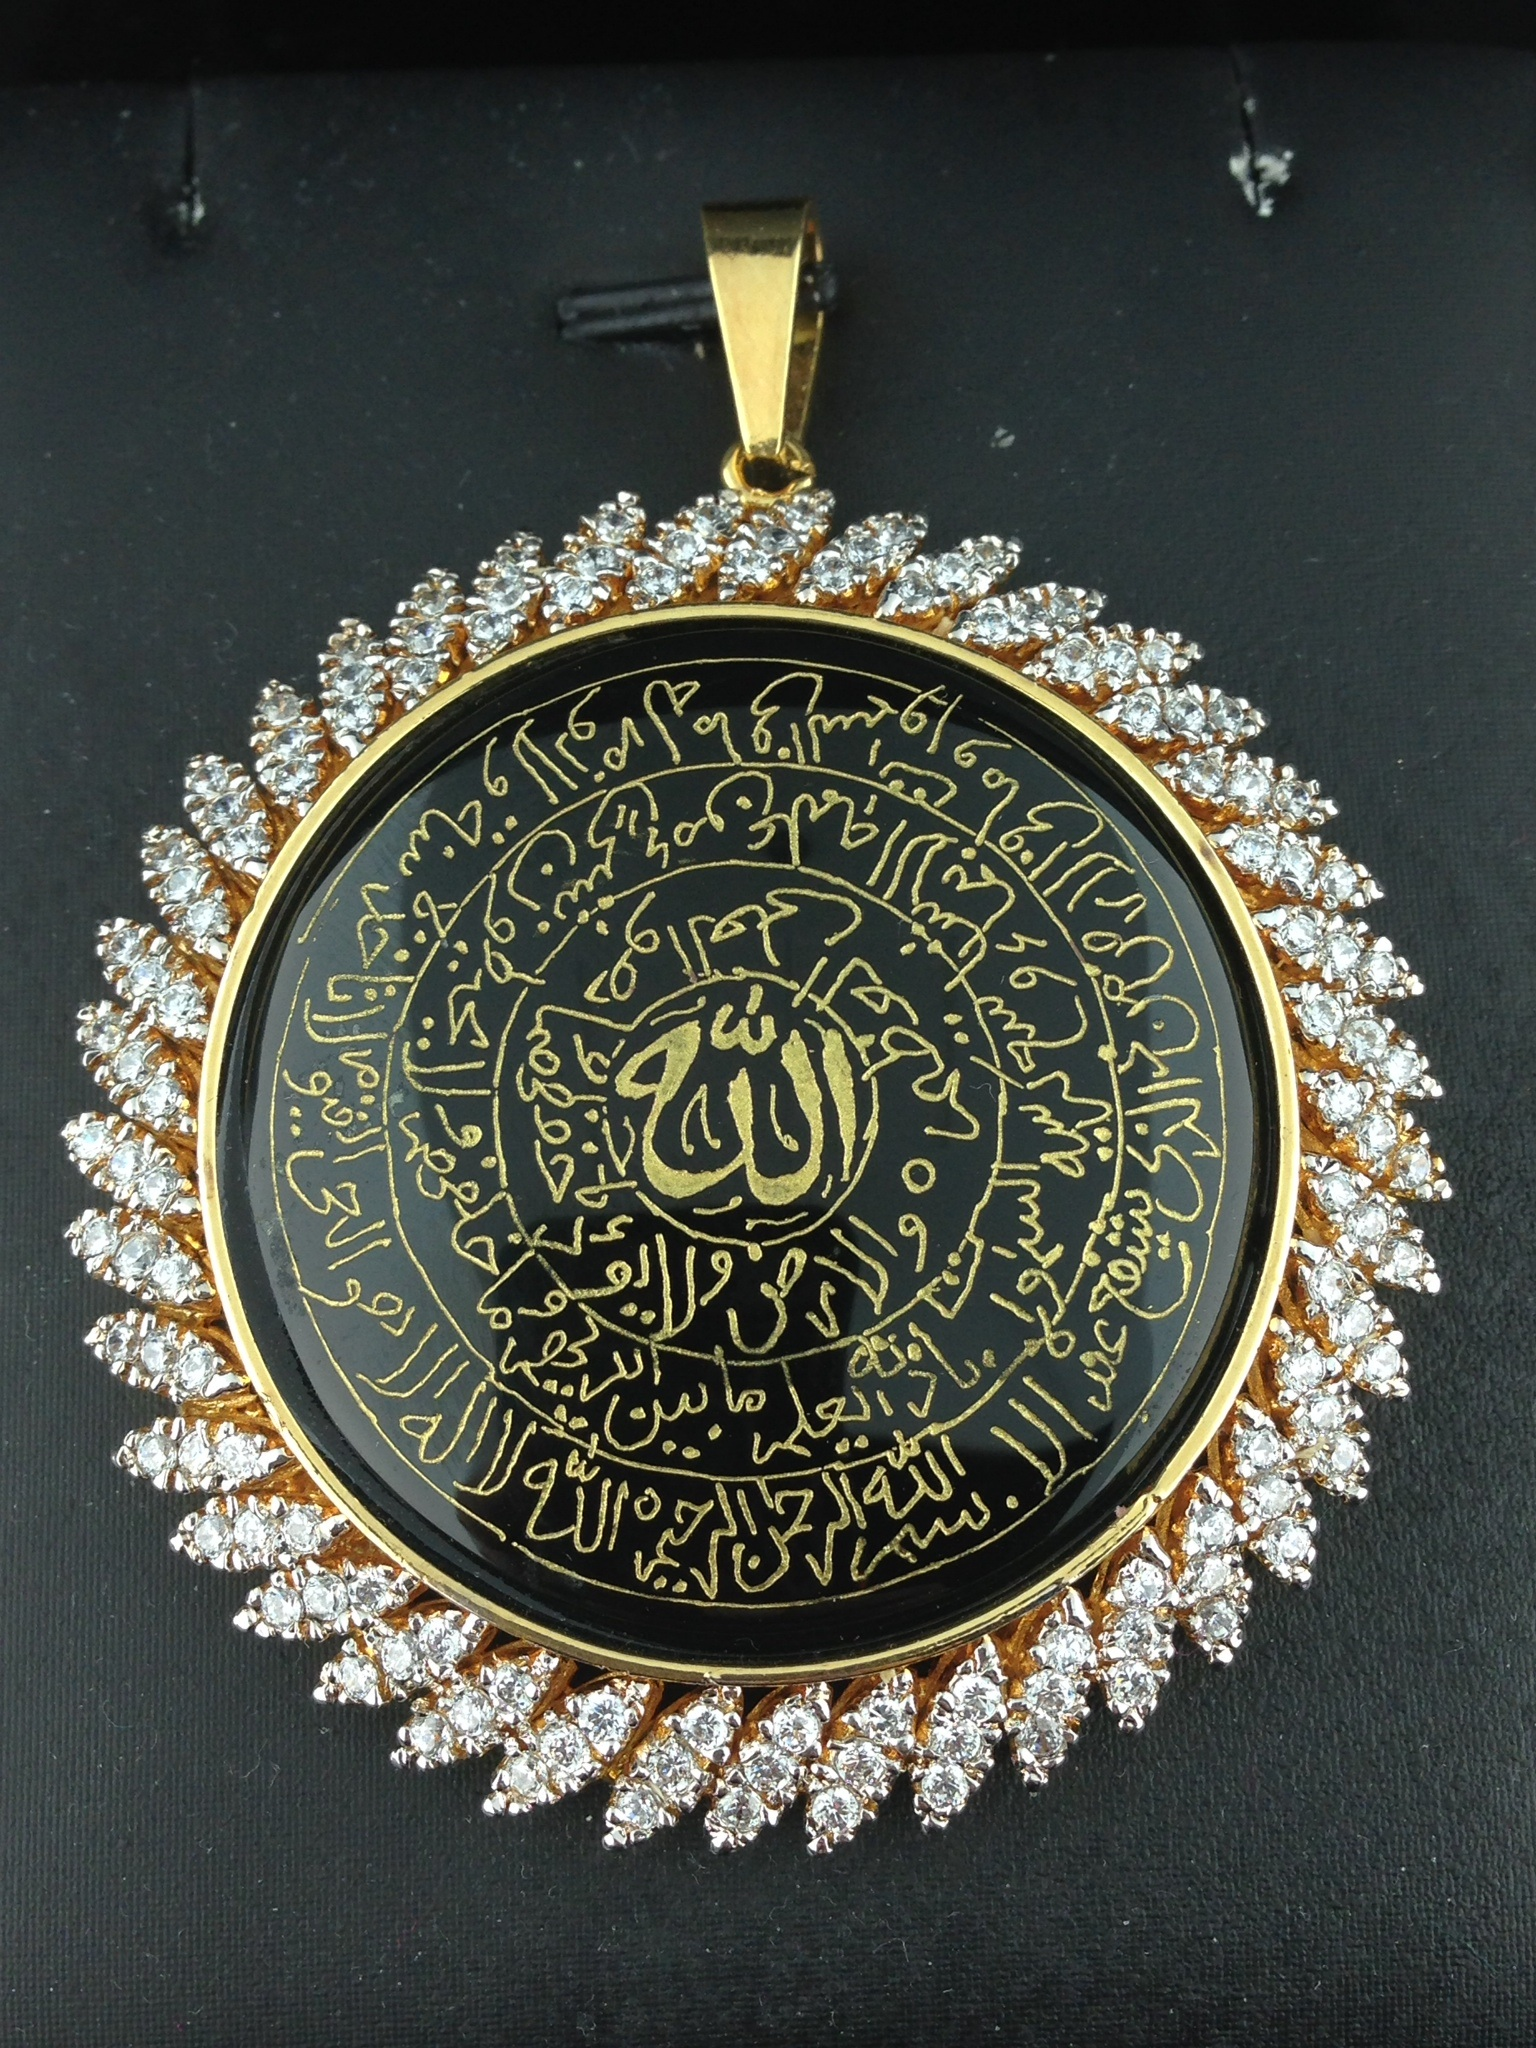 Ayat al kursi hand engraved on black onex indian kundan ayat al kursi hand engraved on black onex indian kundan islamic and gold jewelry in atlanta and online aloadofball